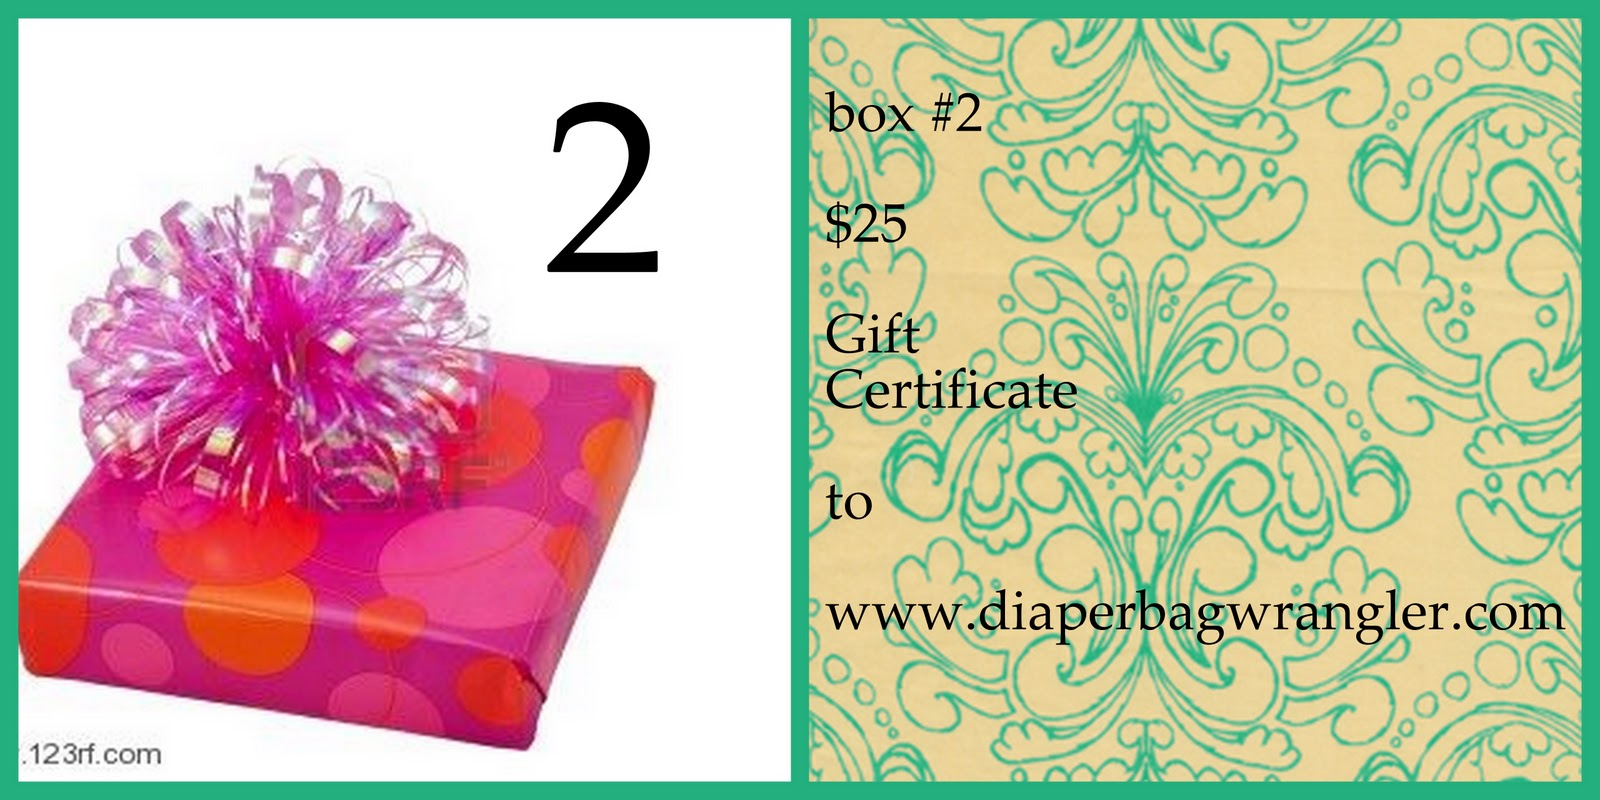 the diaper bag wrangler the birthday gift boxes unveiled